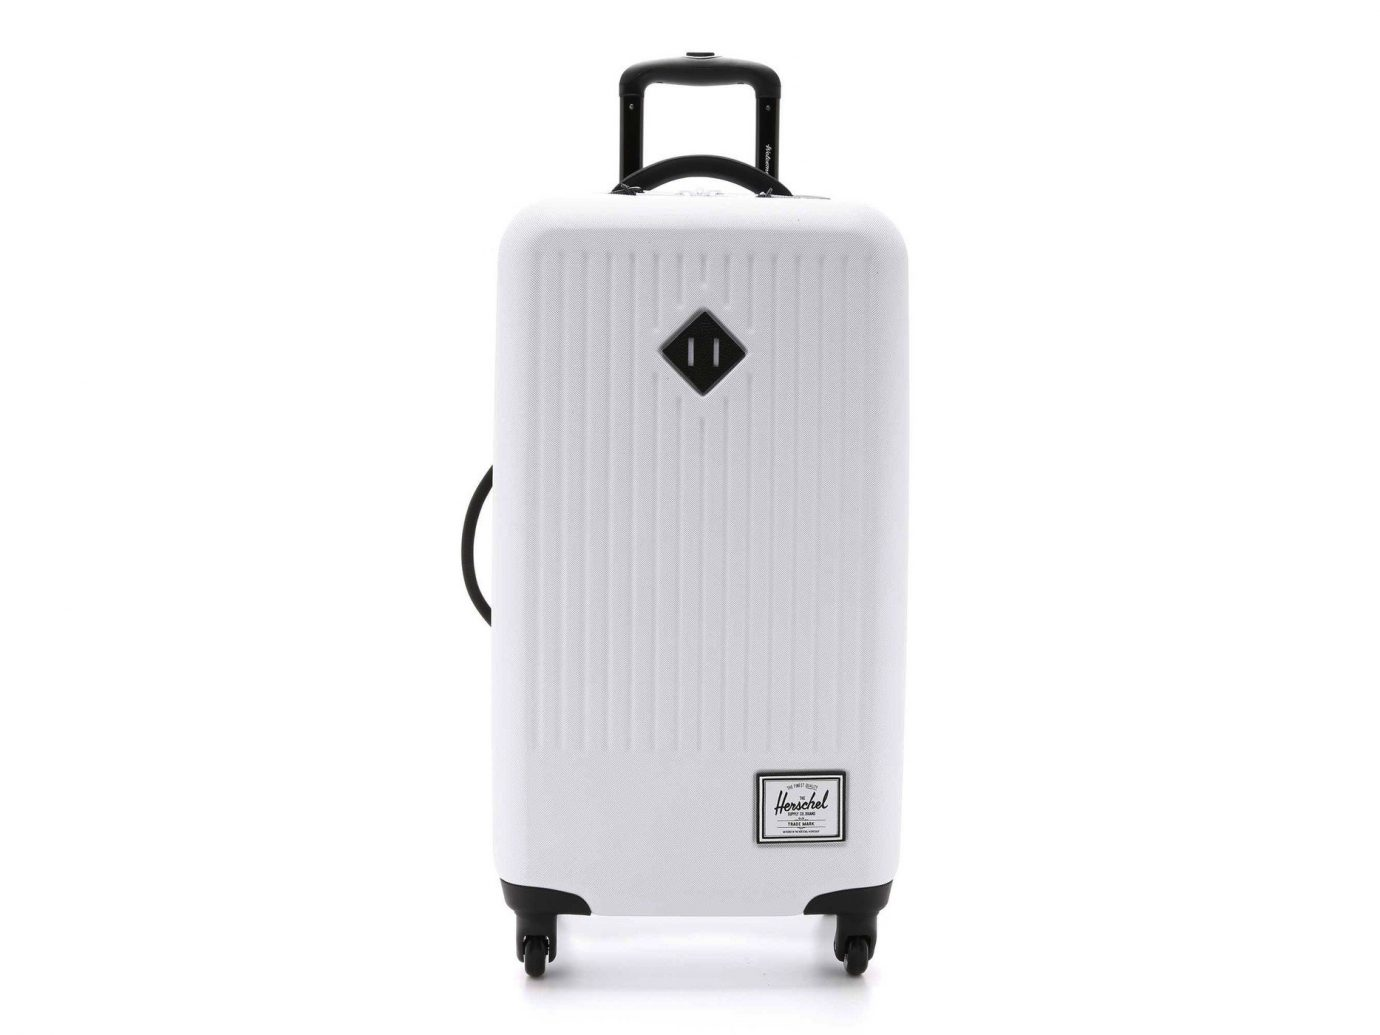 Style + Design suitcase hand luggage product appliance kitchen appliance